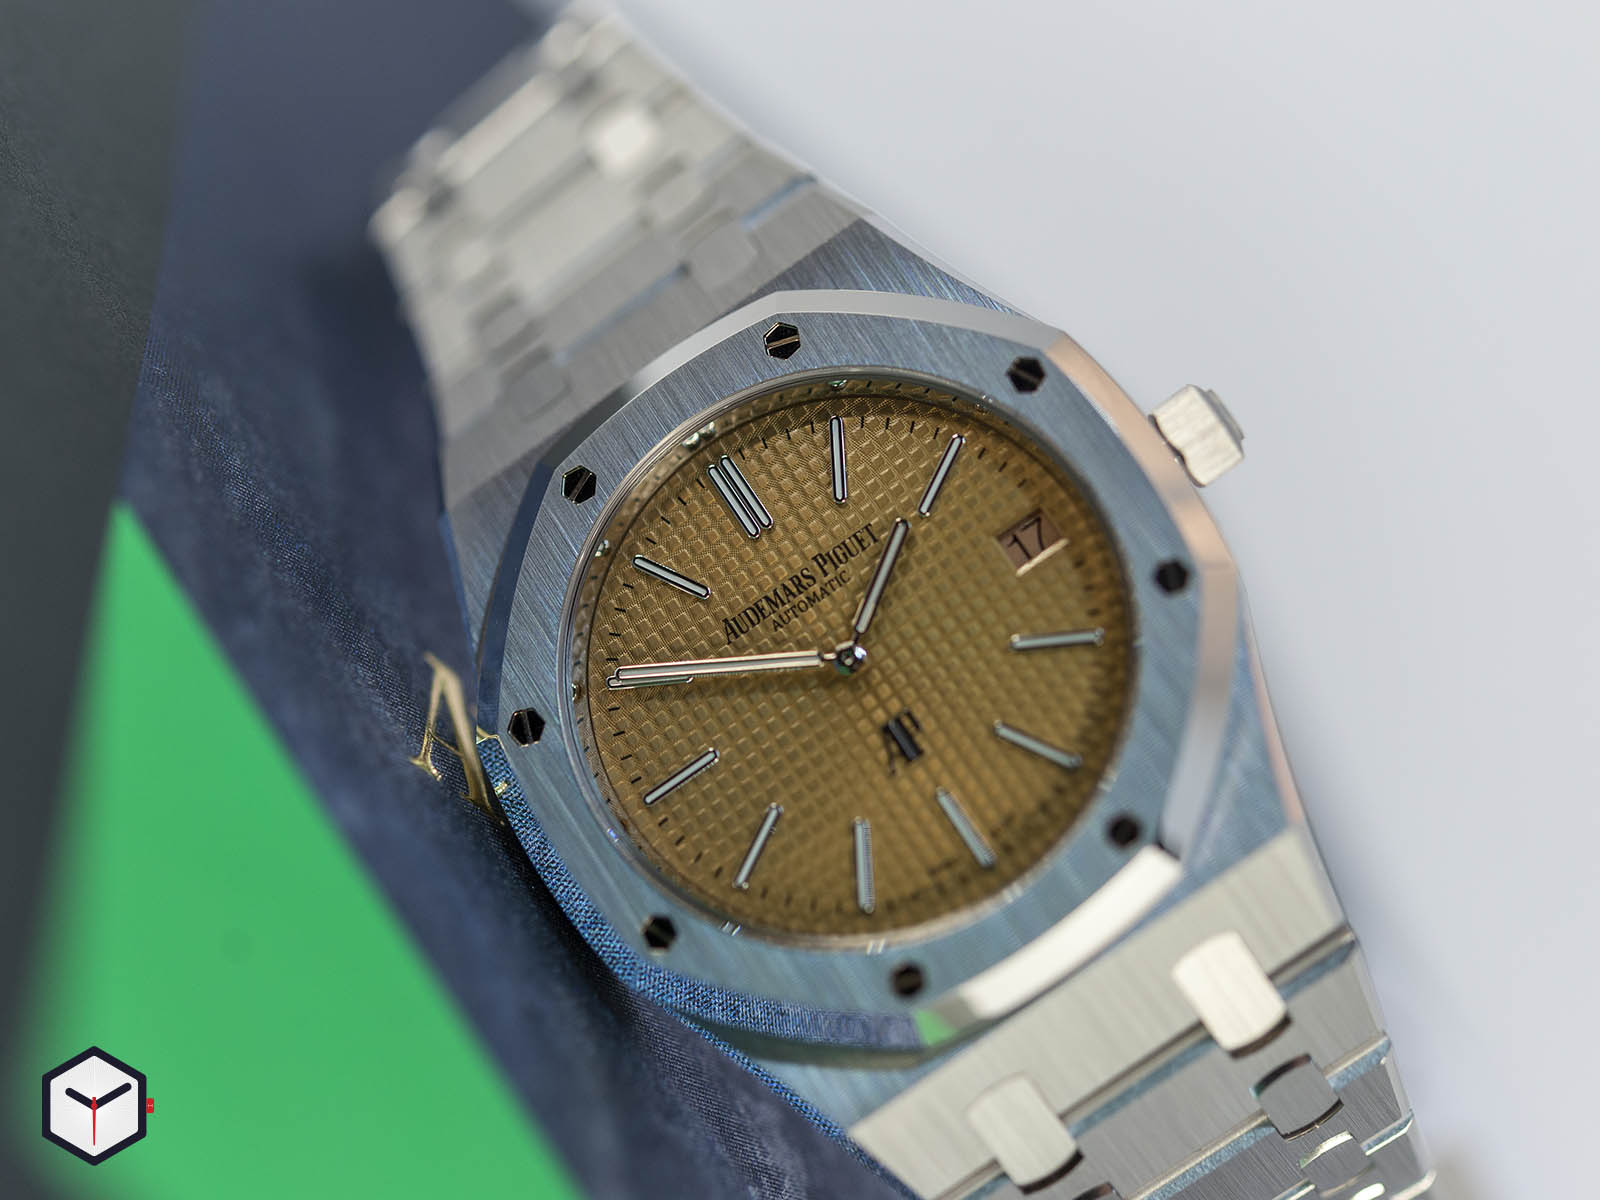 15202bc-oo-1240bc-01-audemars-piguet-royal-oak-jumbo-extra-thin-2019-3.jpg